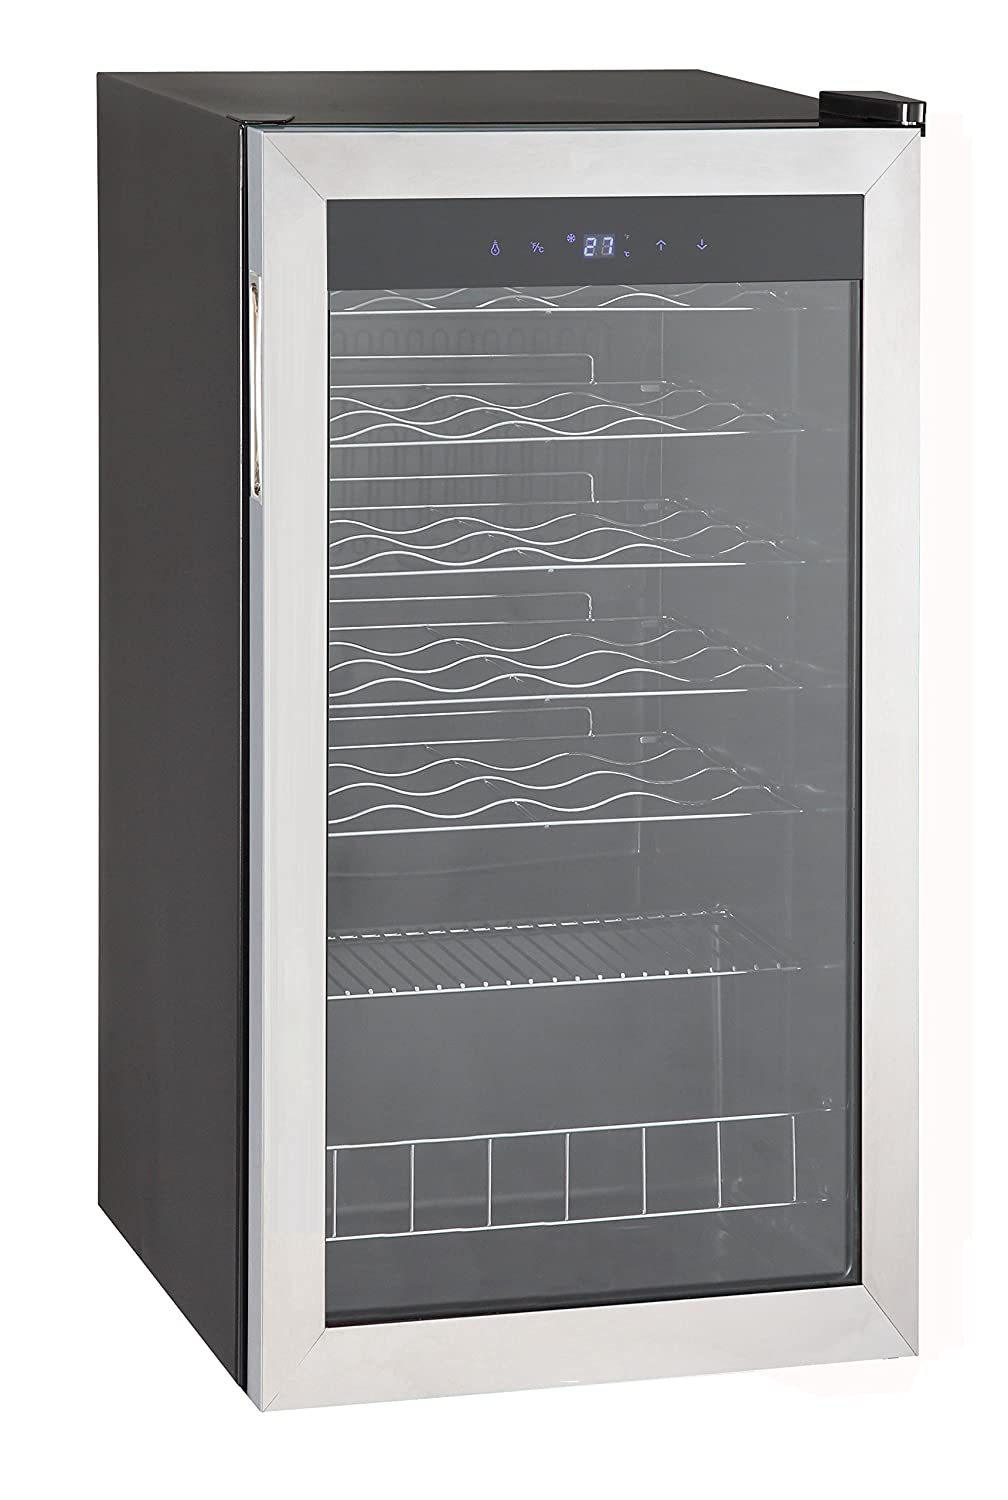 SMETA Wine Cooler 28 Bottle Beer Compressor Refrigerator Freestanding with Stainless Steel Glass Door Champagne Beverage Cellar Chiller Fridge,3.1 cu ft,Black